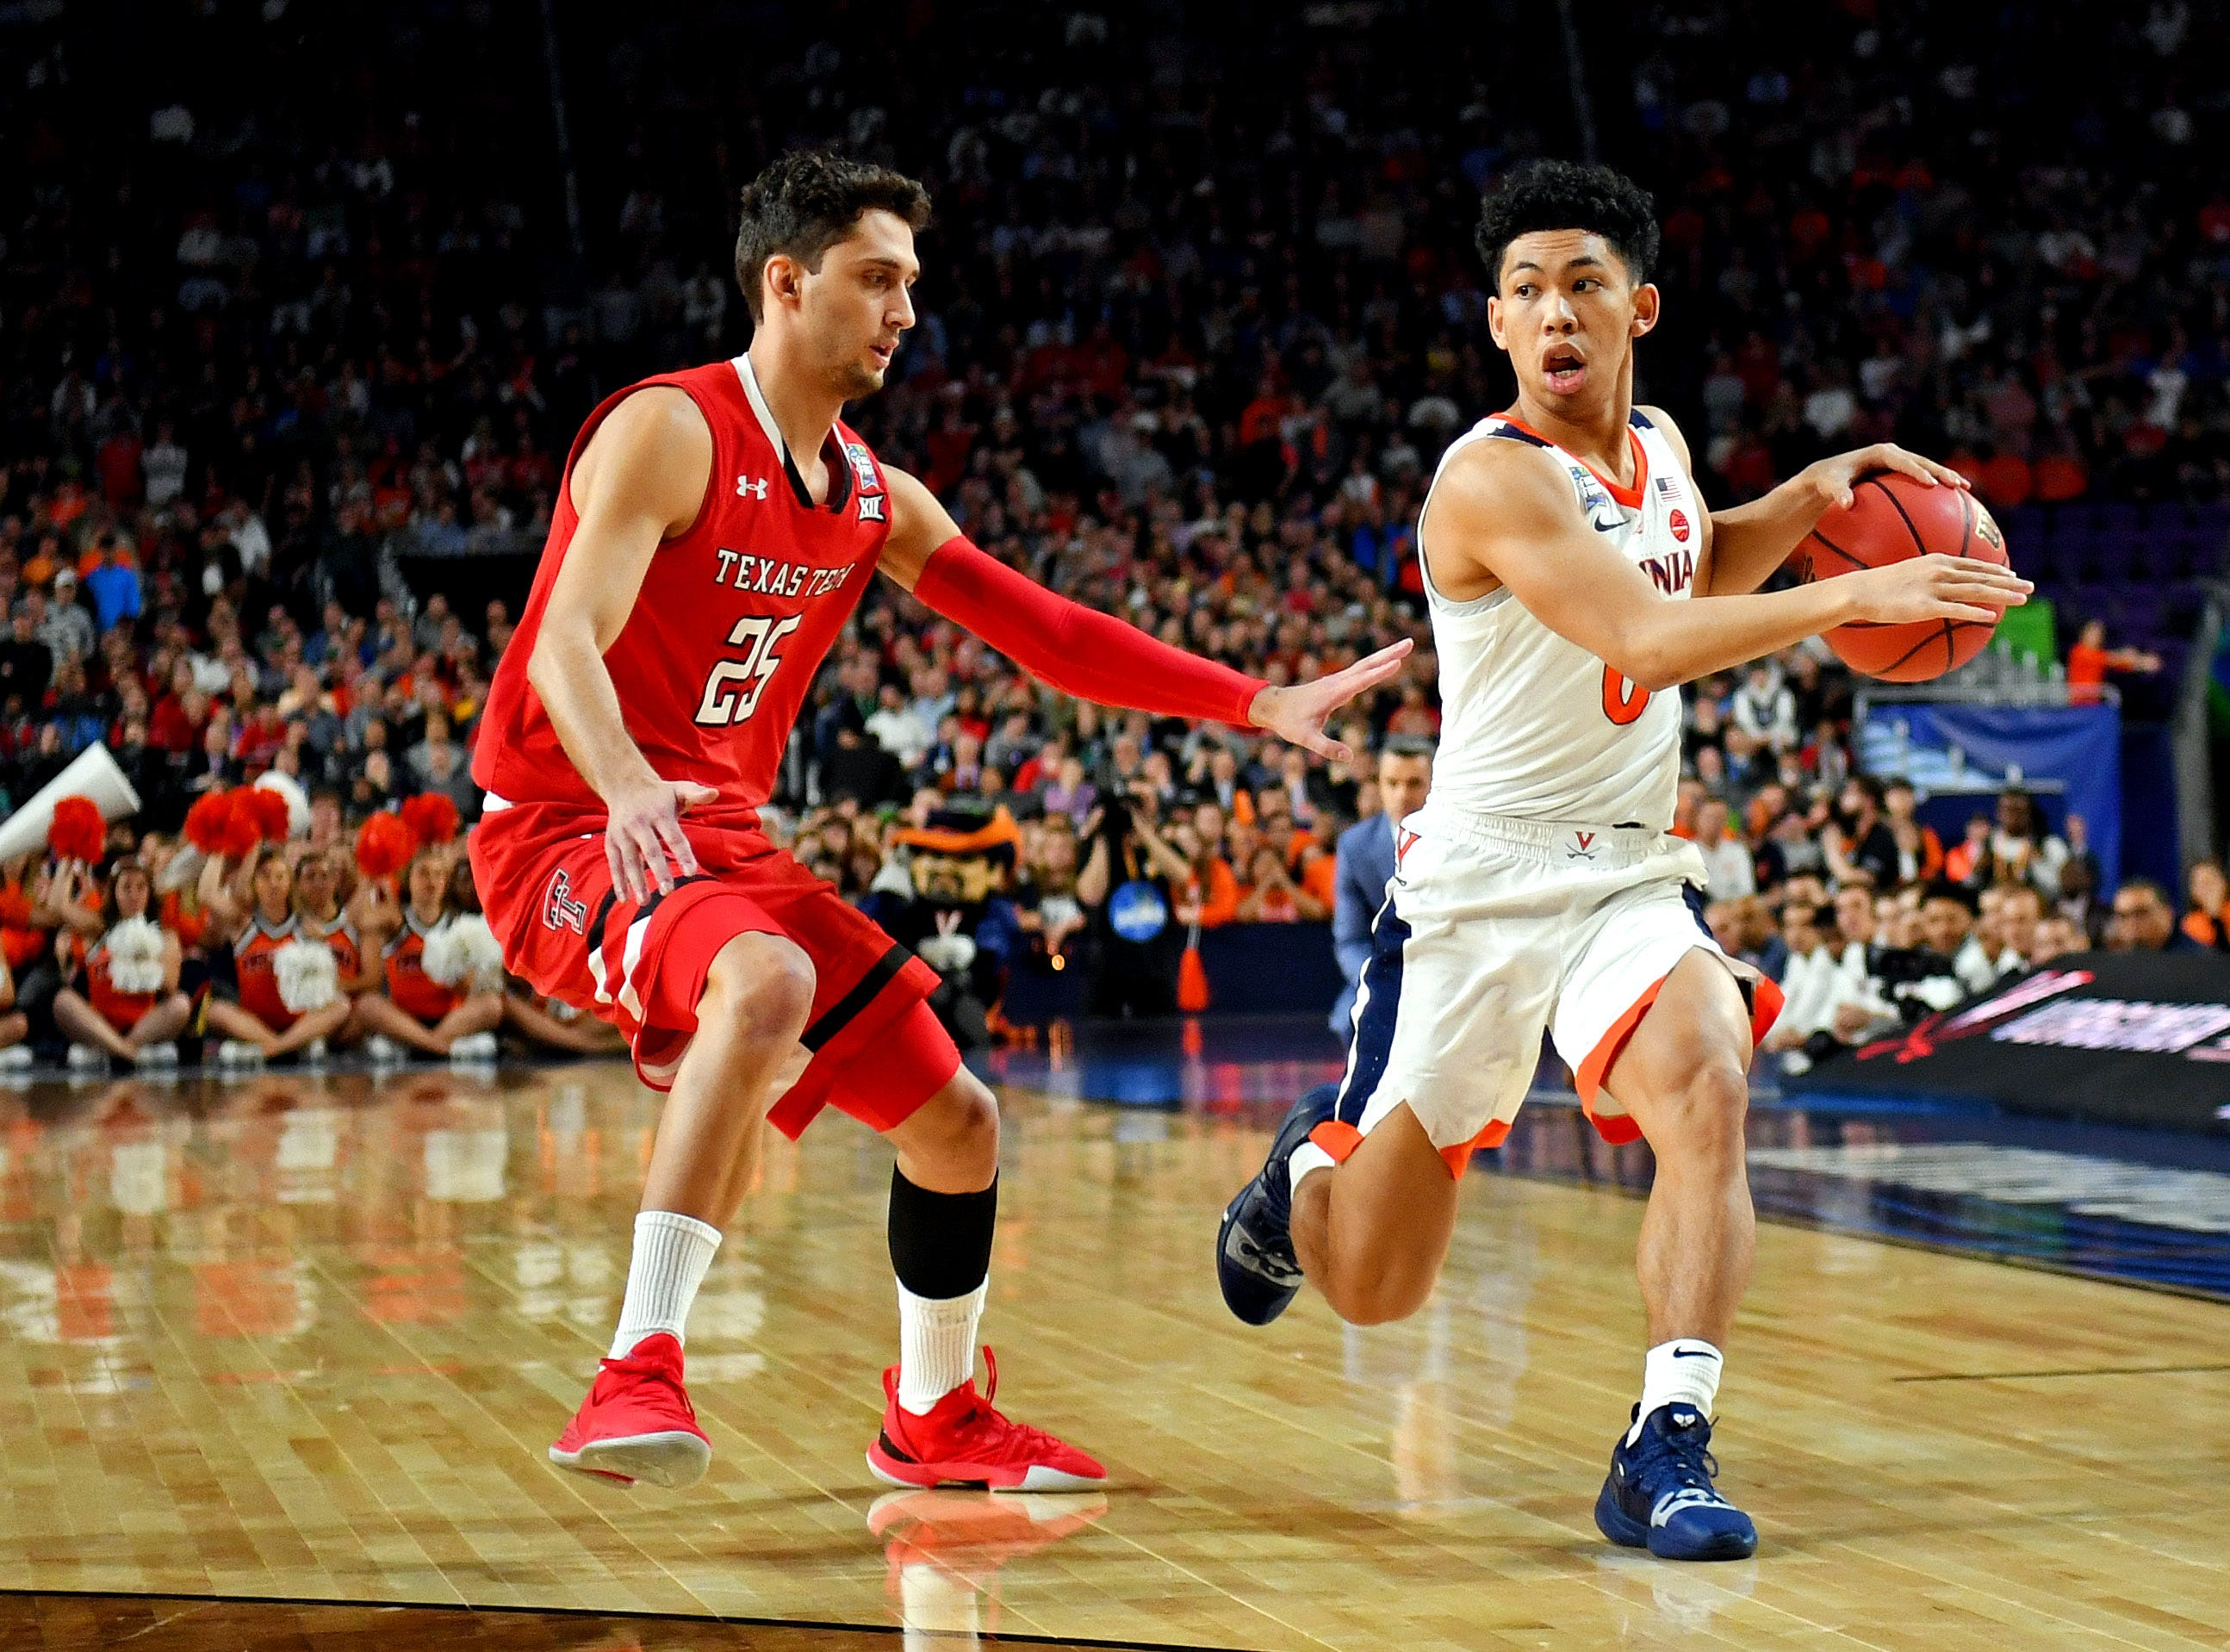 Apr 8, 2019; Minneapolis, MN, USA; Virginia Cavaliers guard Kihei Clark (0) handles the ball against Texas Tech Red Raiders guard Davide Moretti (25) during the first half in the championship game of the 2019 men's Final Four at US Bank Stadium. Mandatory Credit: Bob Donnan-USA TODAY Sports